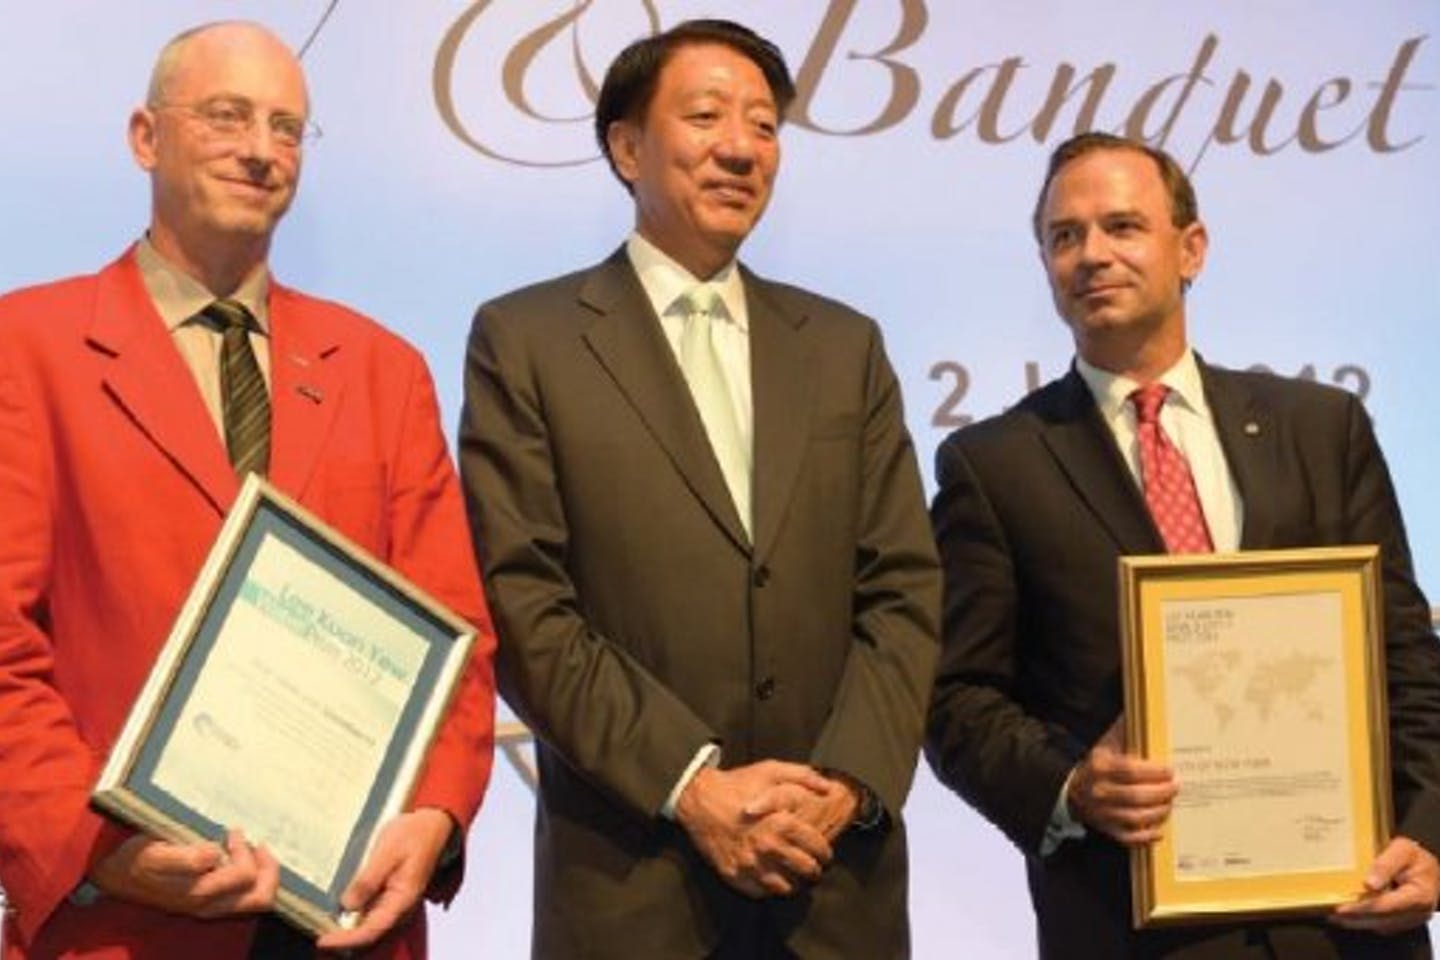 water technology and urban planning prizes